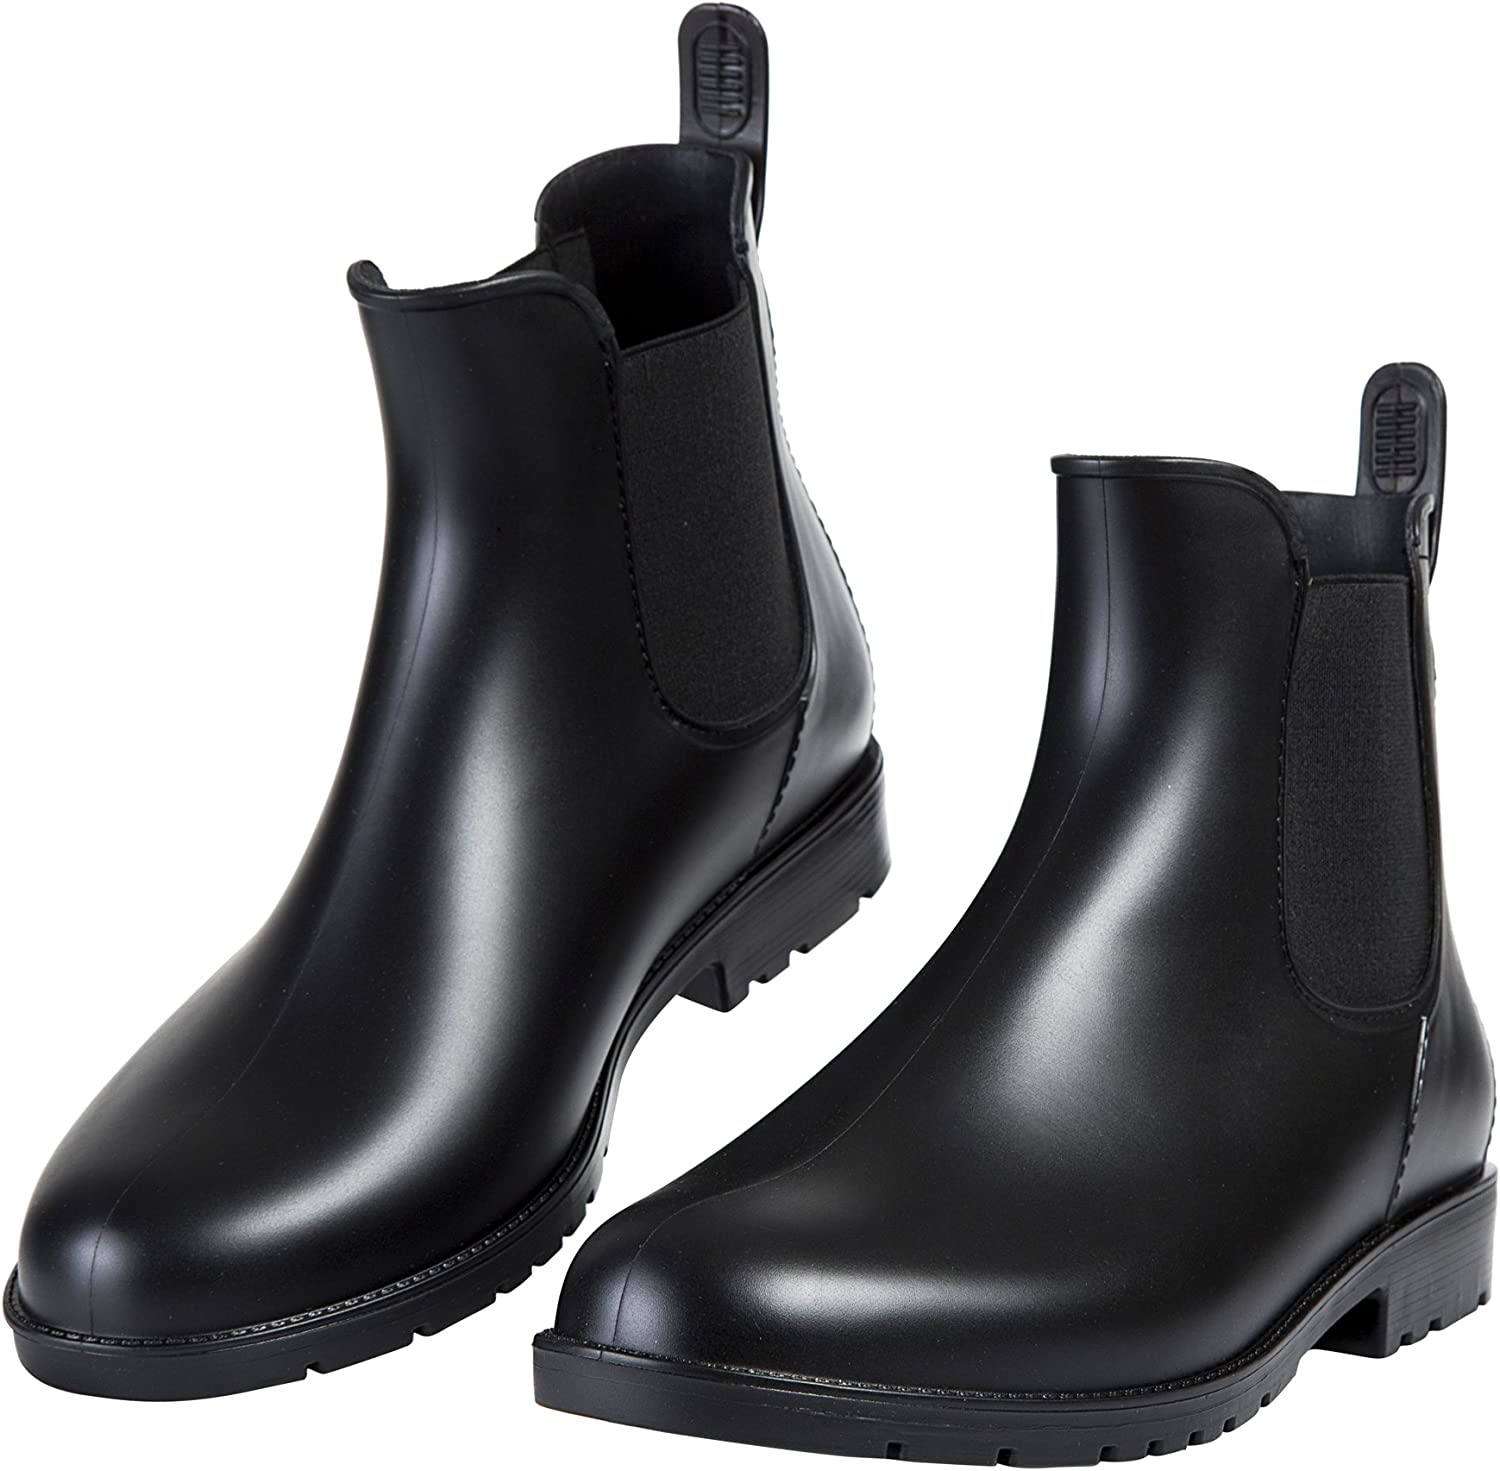 Top 10 Waterproof Ankle Garden Rain Boots Nonslip